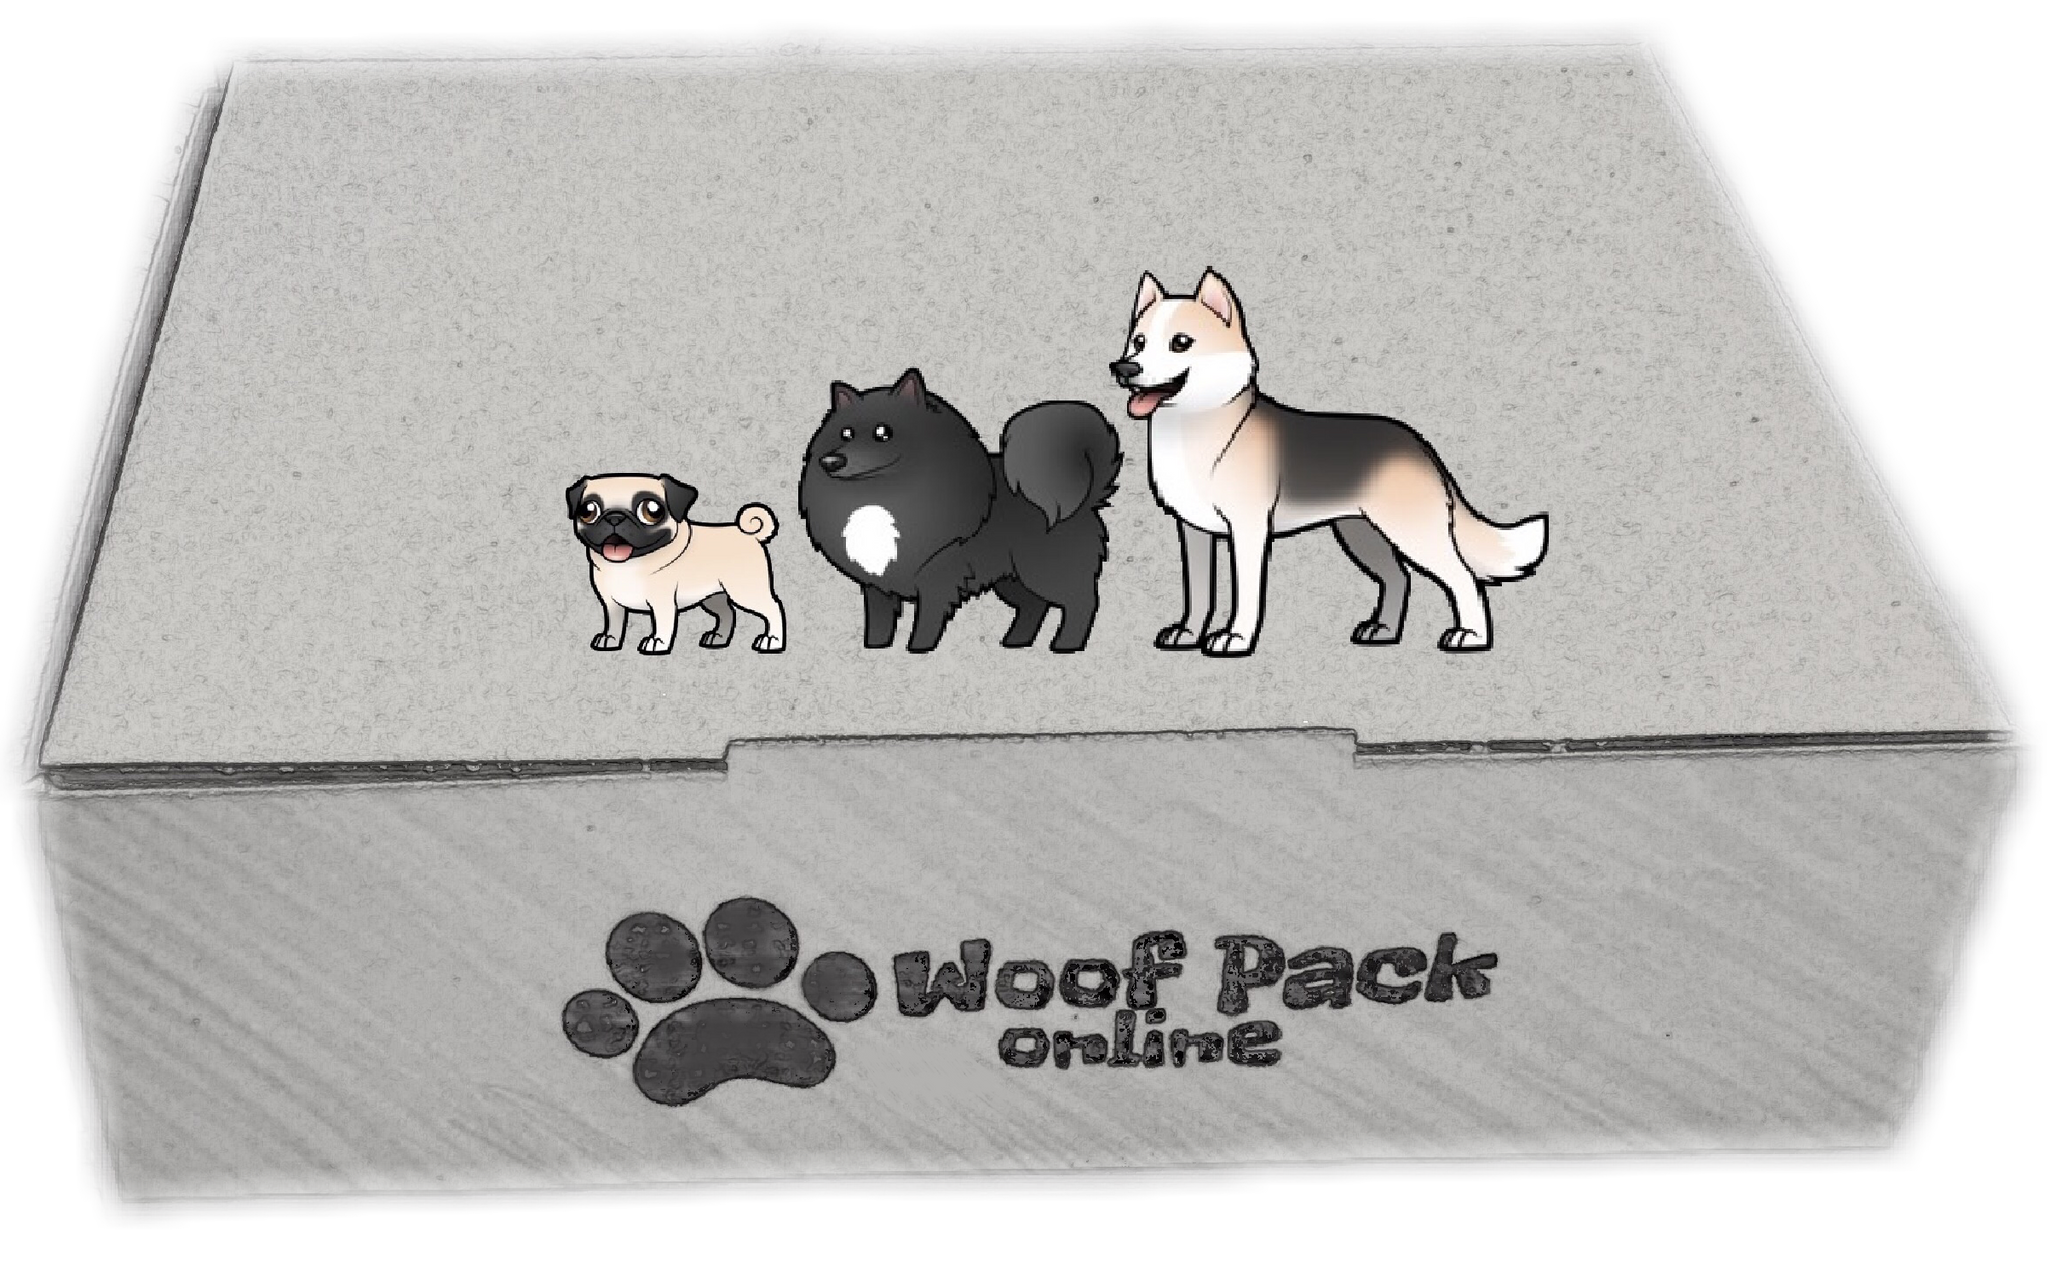 Woof Pack Surprise Box